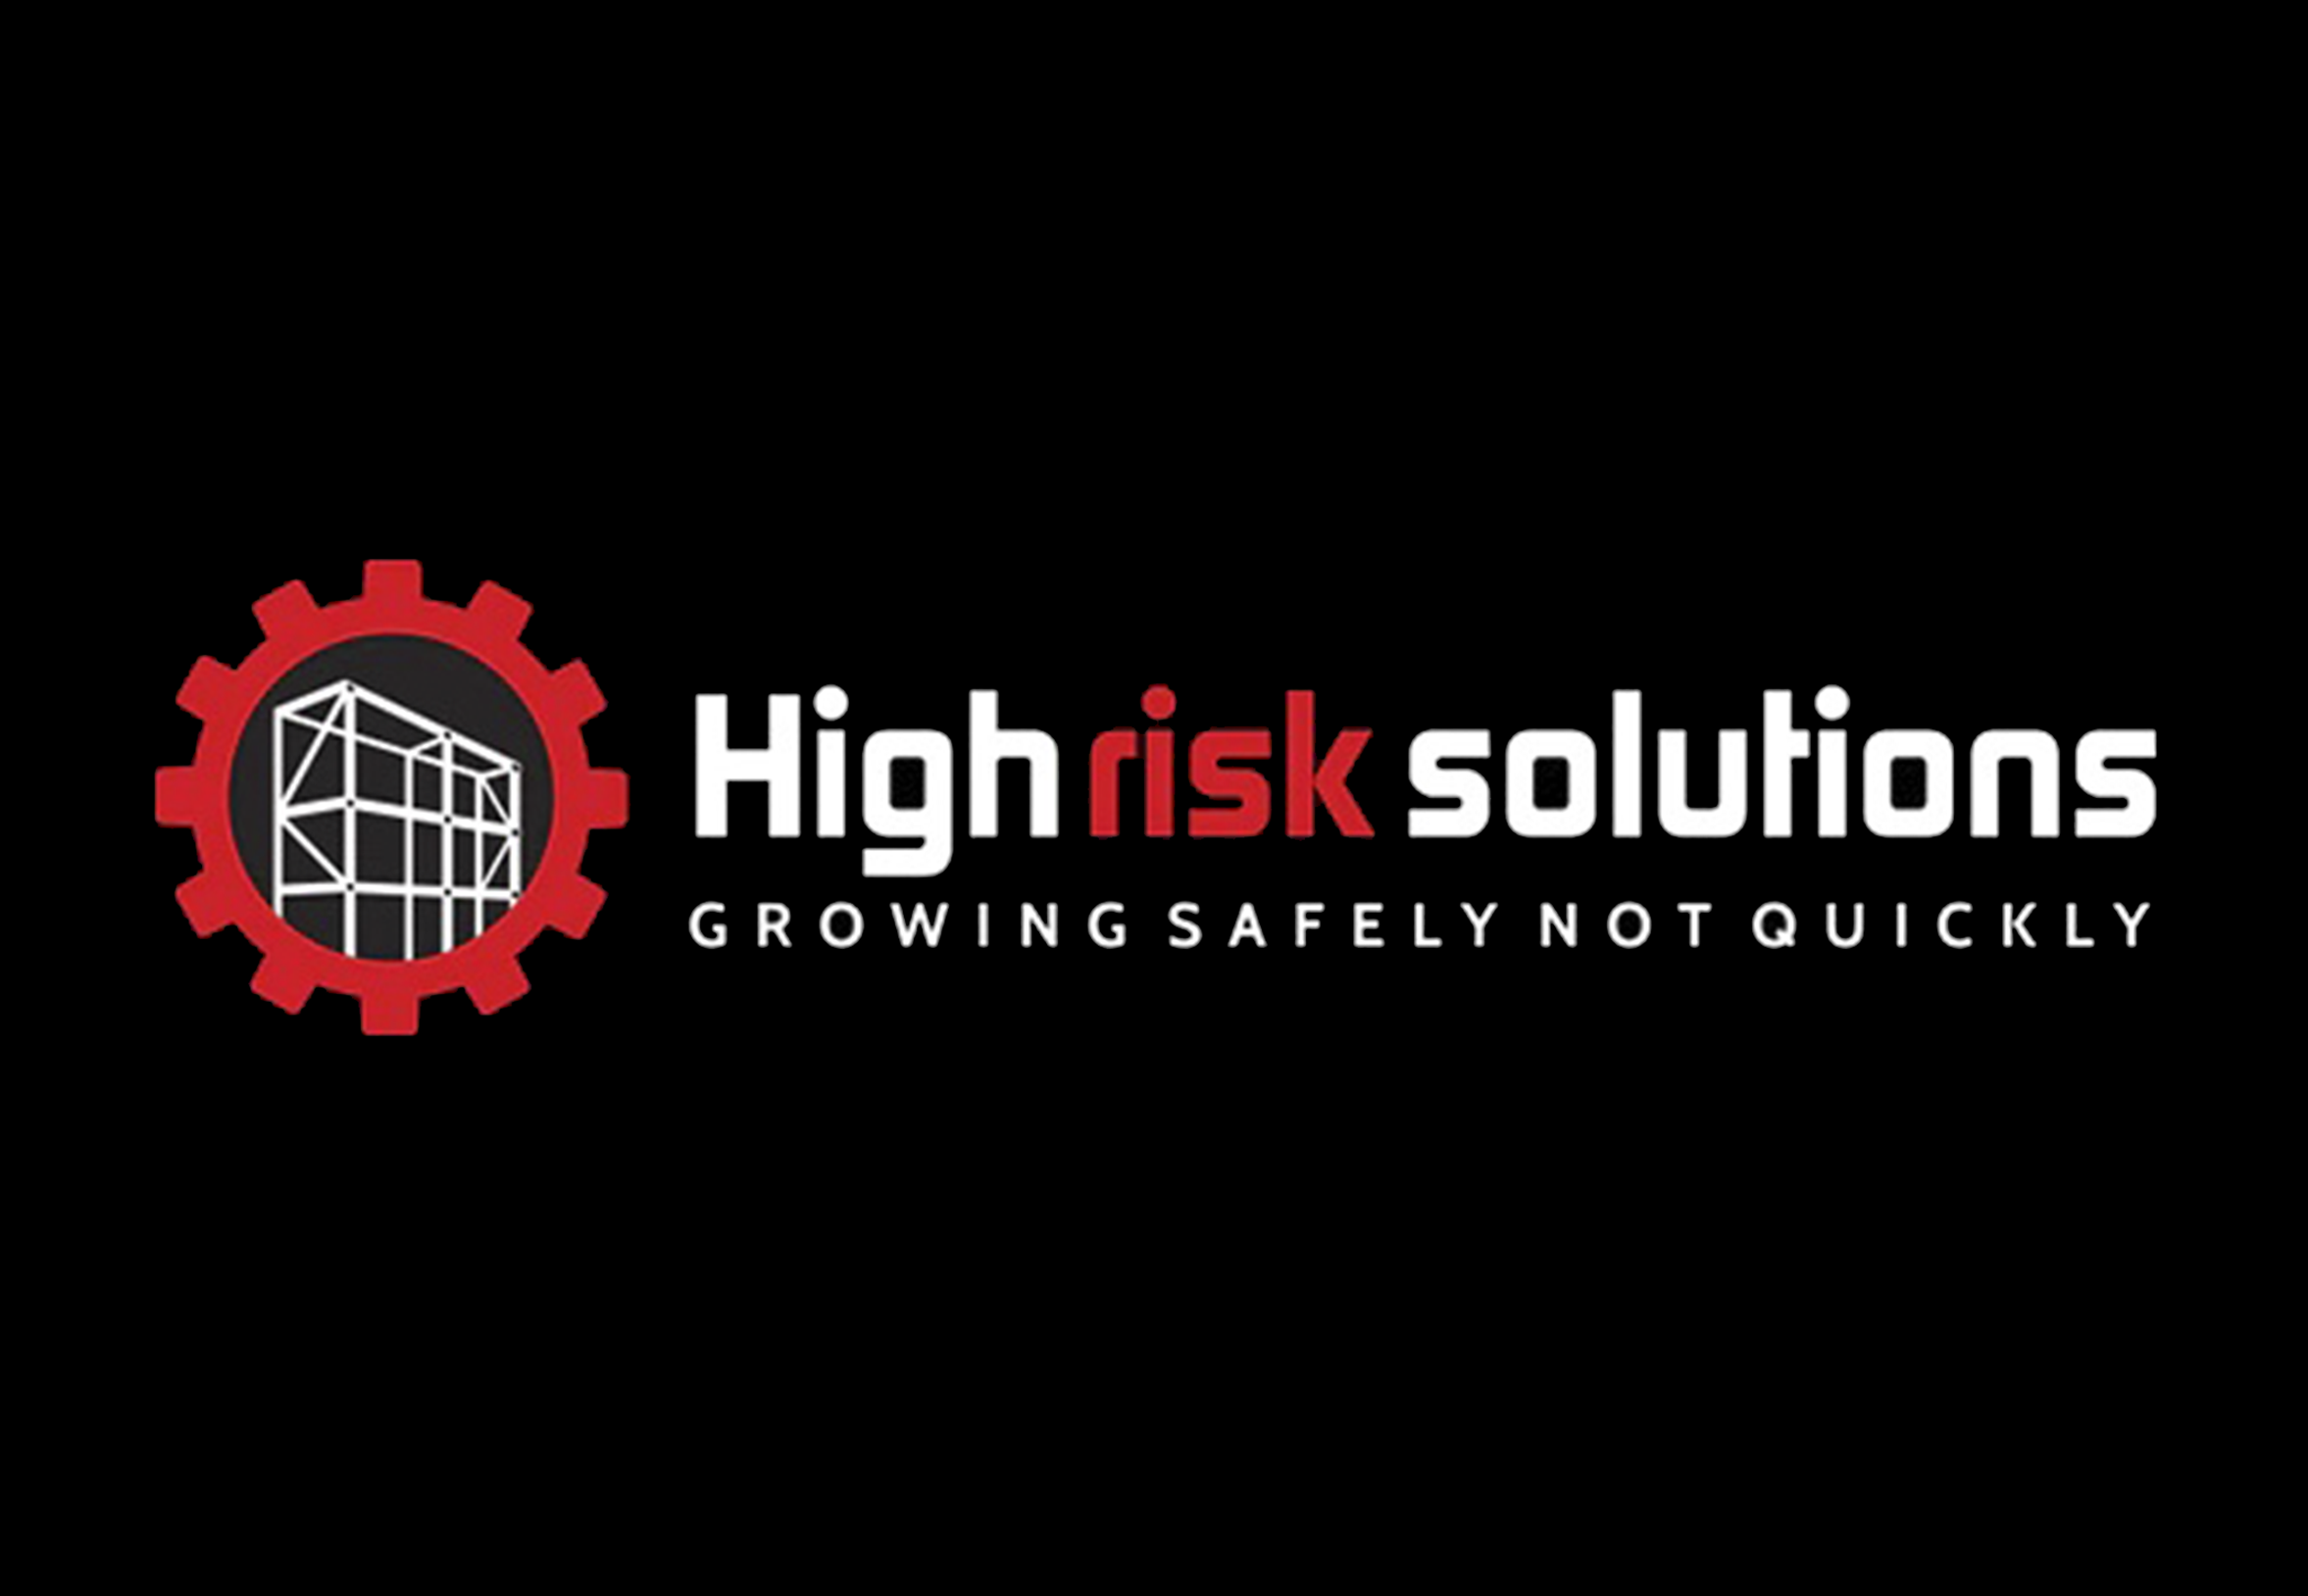 High risk solutions